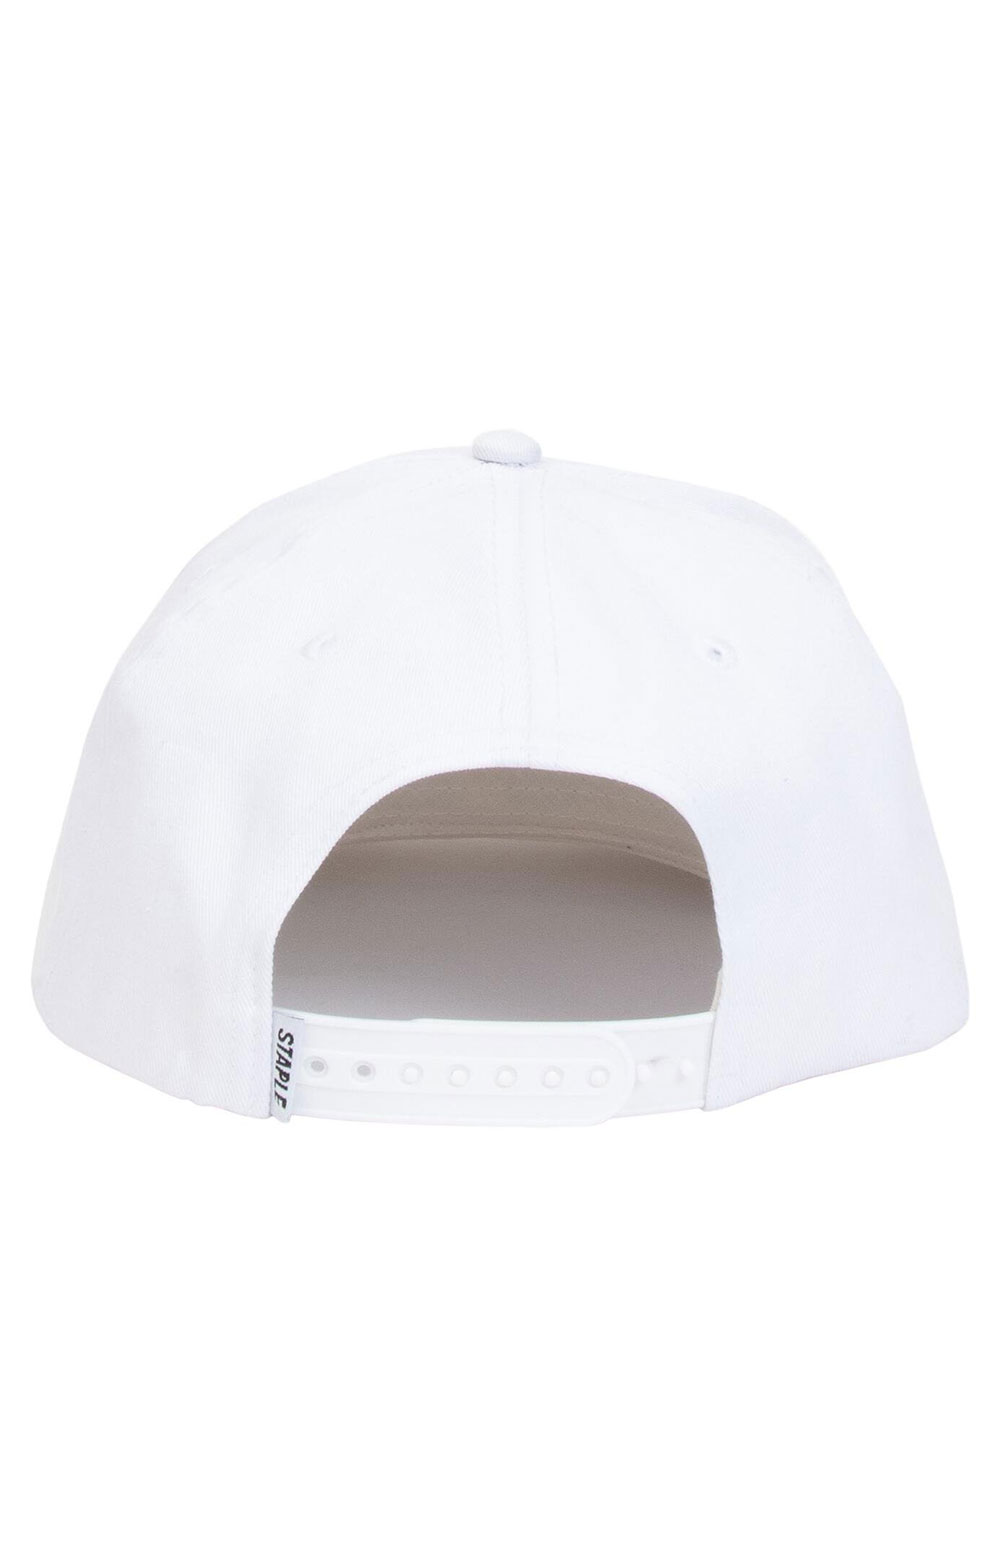 Pigeon Snap-Back Hat - White  3